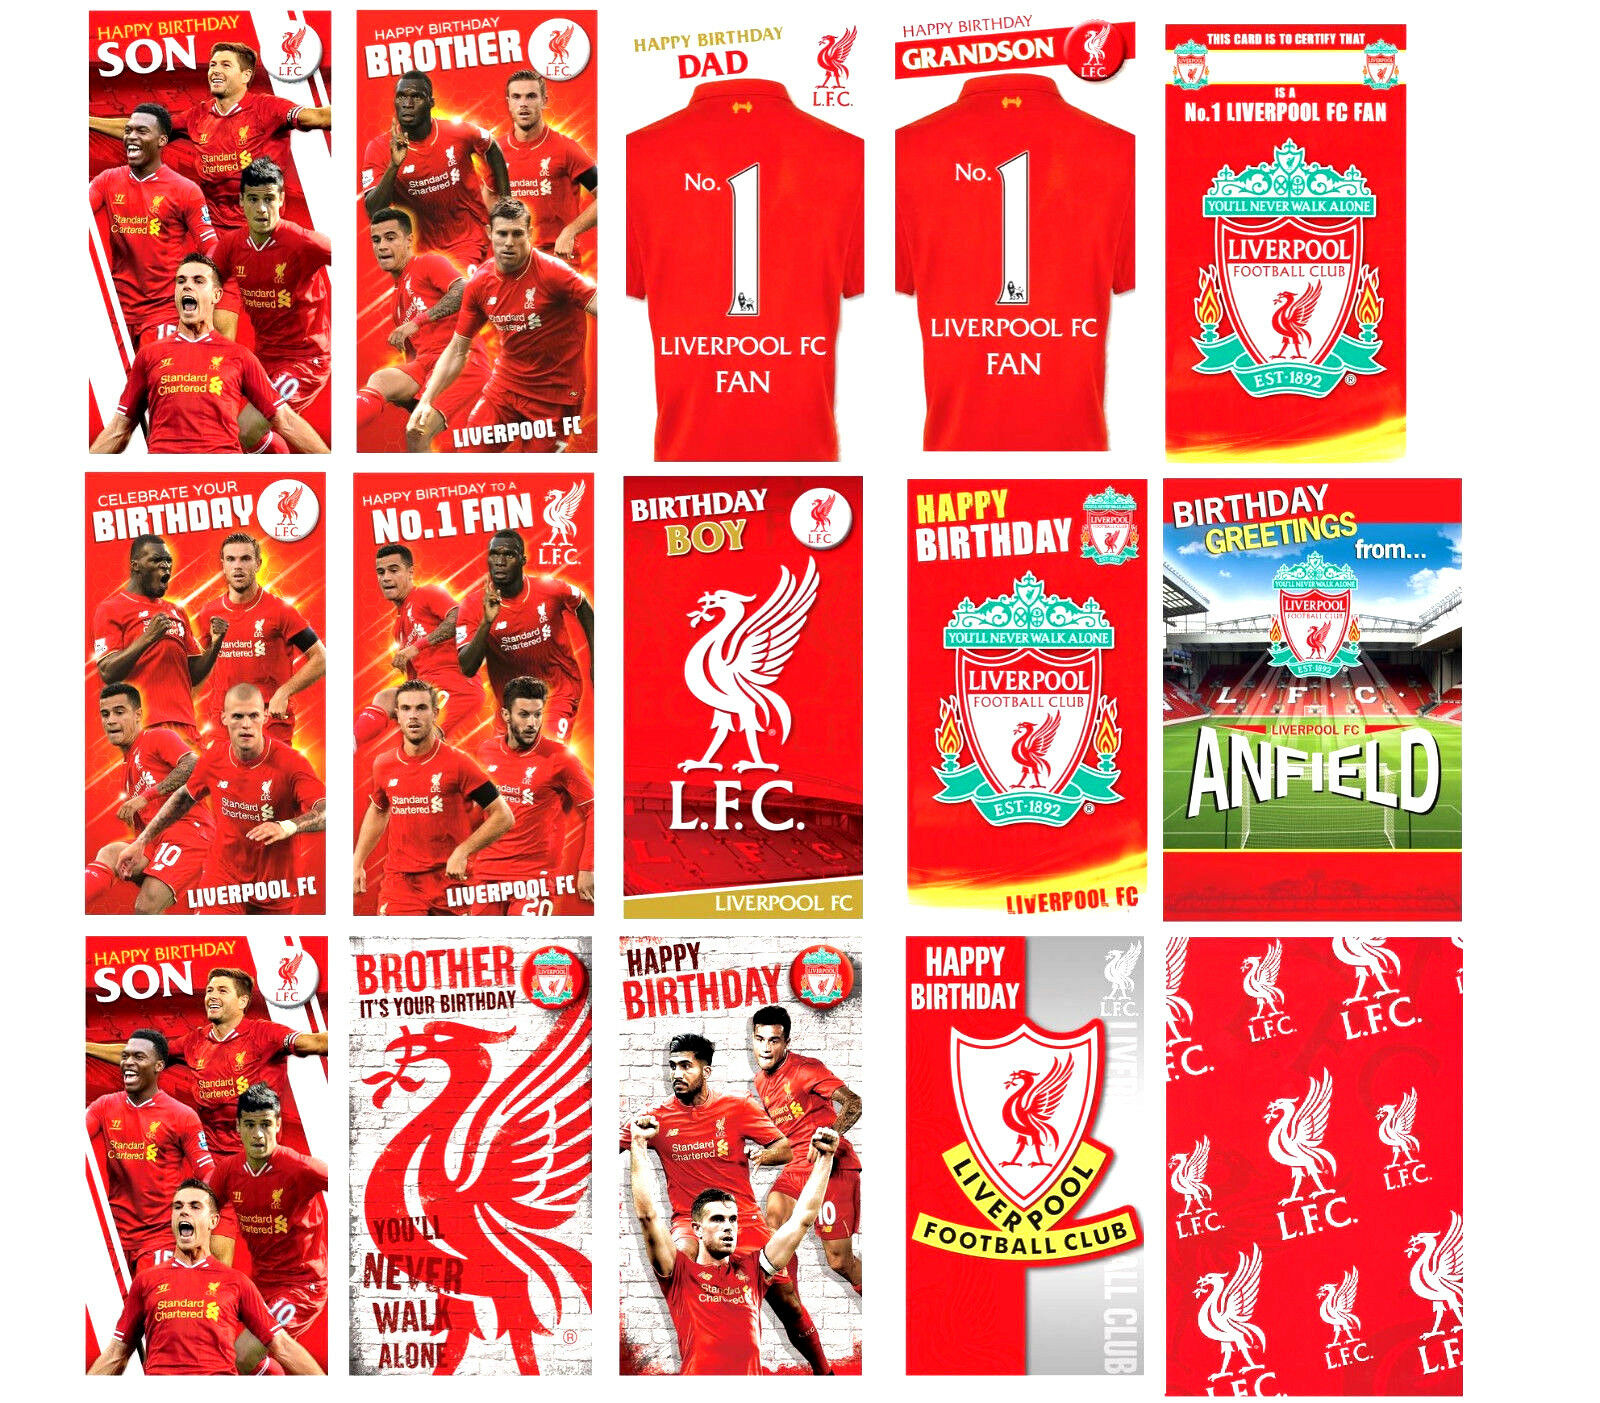 Details About Official LIVERPOOL FC FOOTBALL Birthday Cards Son Brother Dad Other Gift Wrap